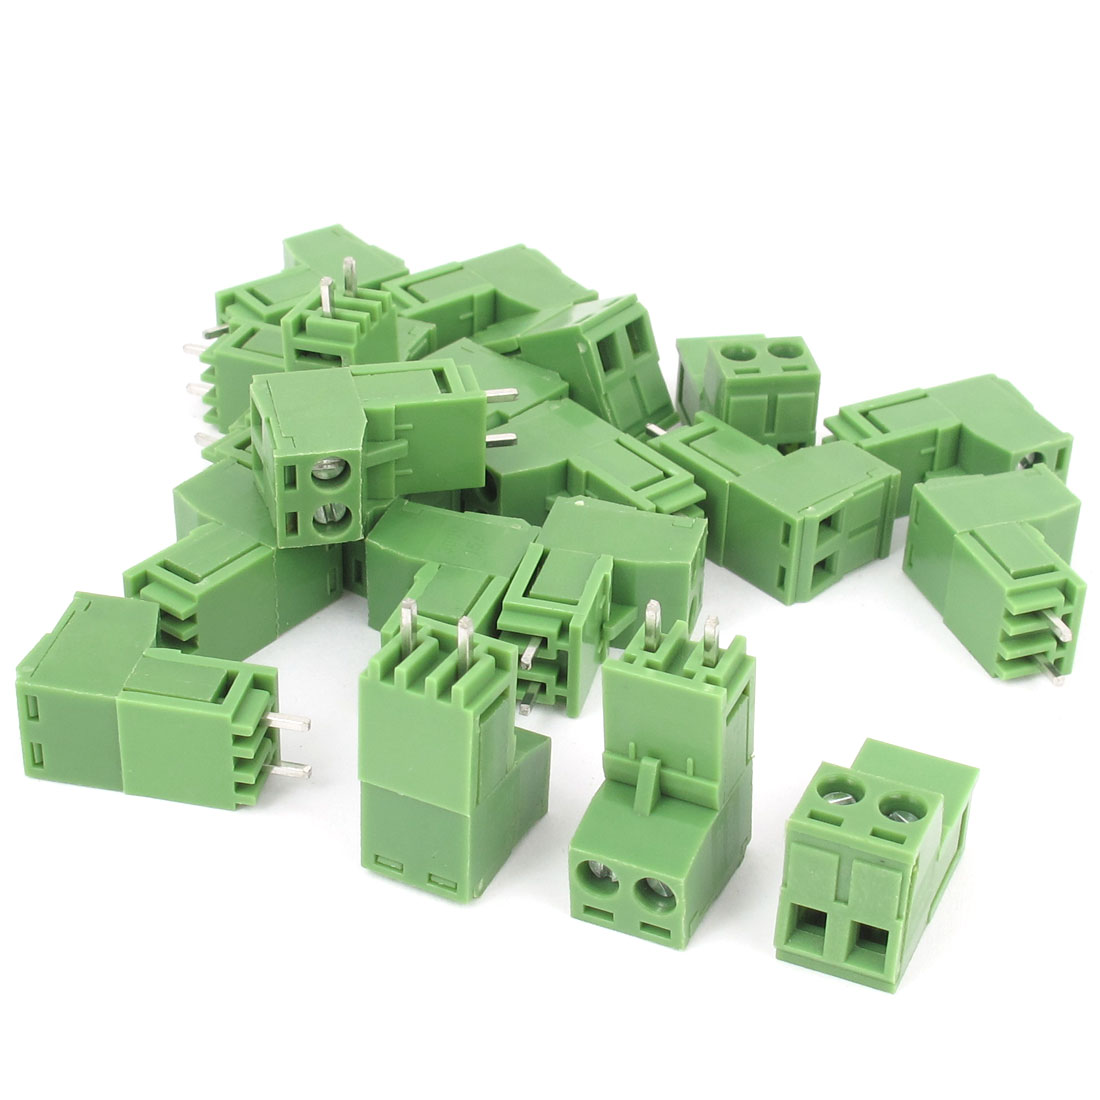 20pcs 300V 15A 5.08mm Pitch 2-Position PCB Screw Terminal Block Connector